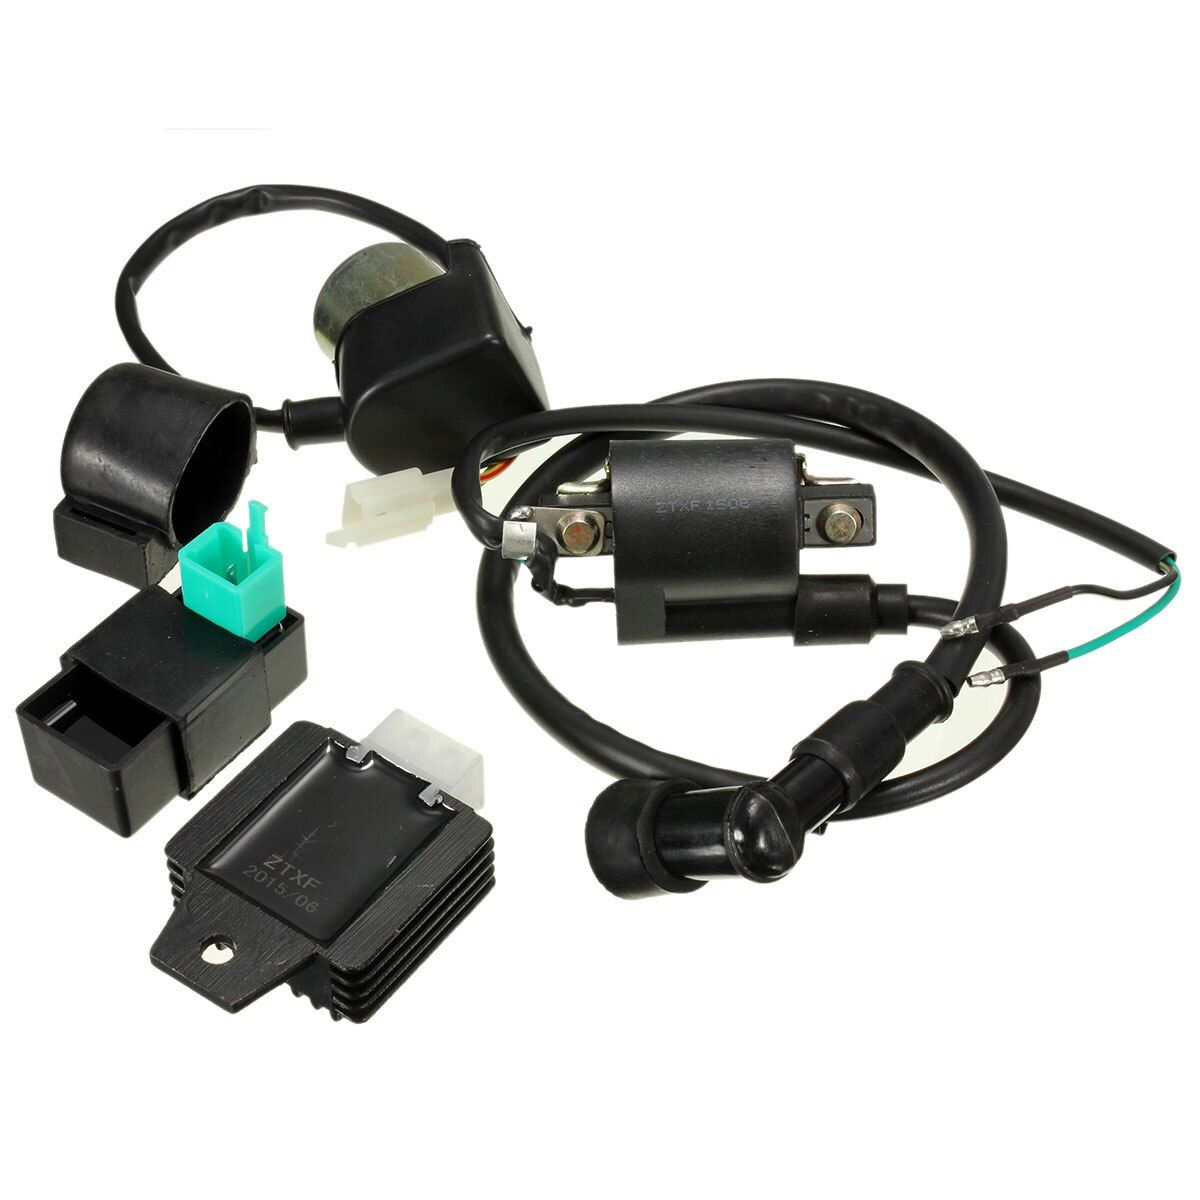 Ignition Coil CDI Box Regulator Rectifier Starter Relay For 110cc 125cc ATV QUAD